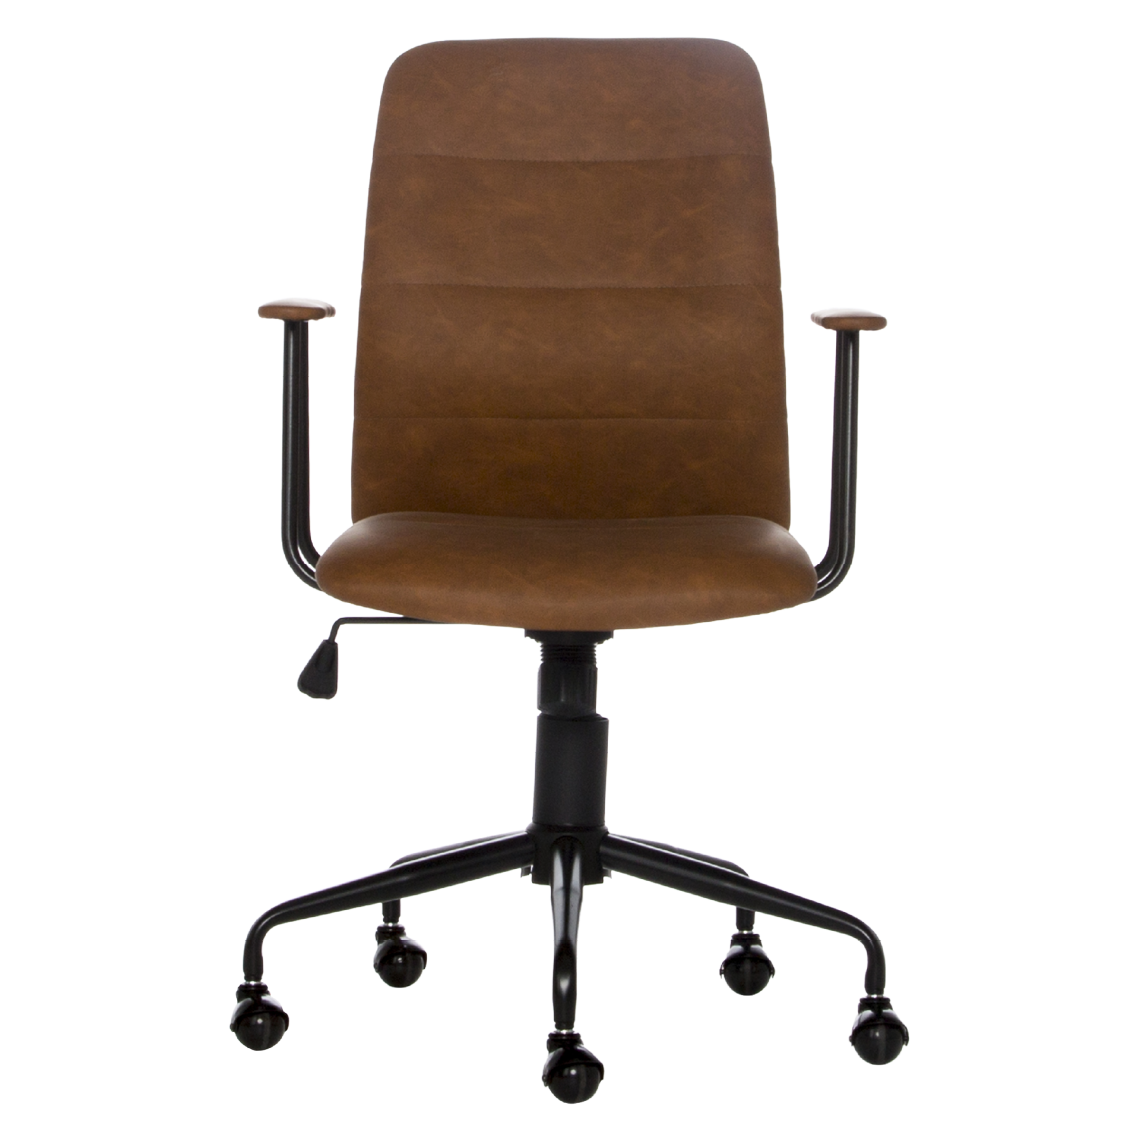 39137 Popular Category - Deep etches_Office Chairs.png